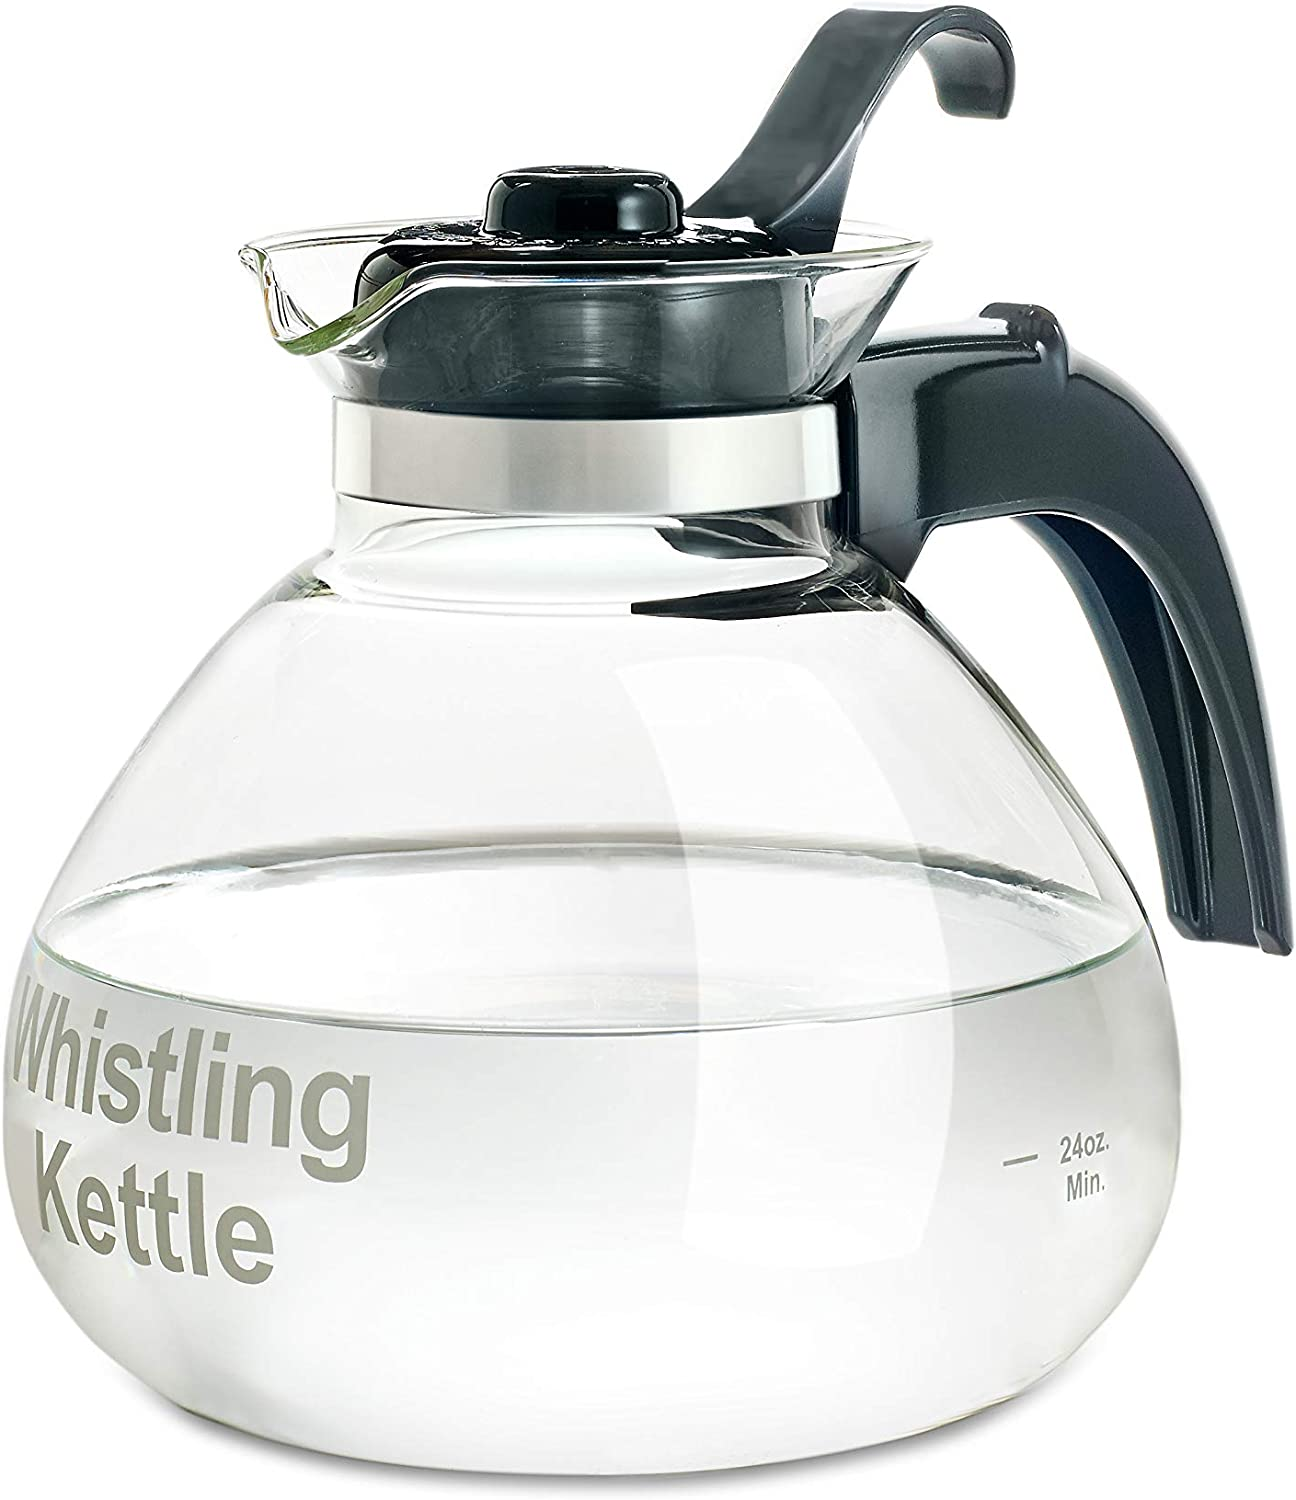 Best Tea Kettle For Gas Stoves 2021: Top 7 Recommendations For Tea Lovers Out There 5 #cookymom